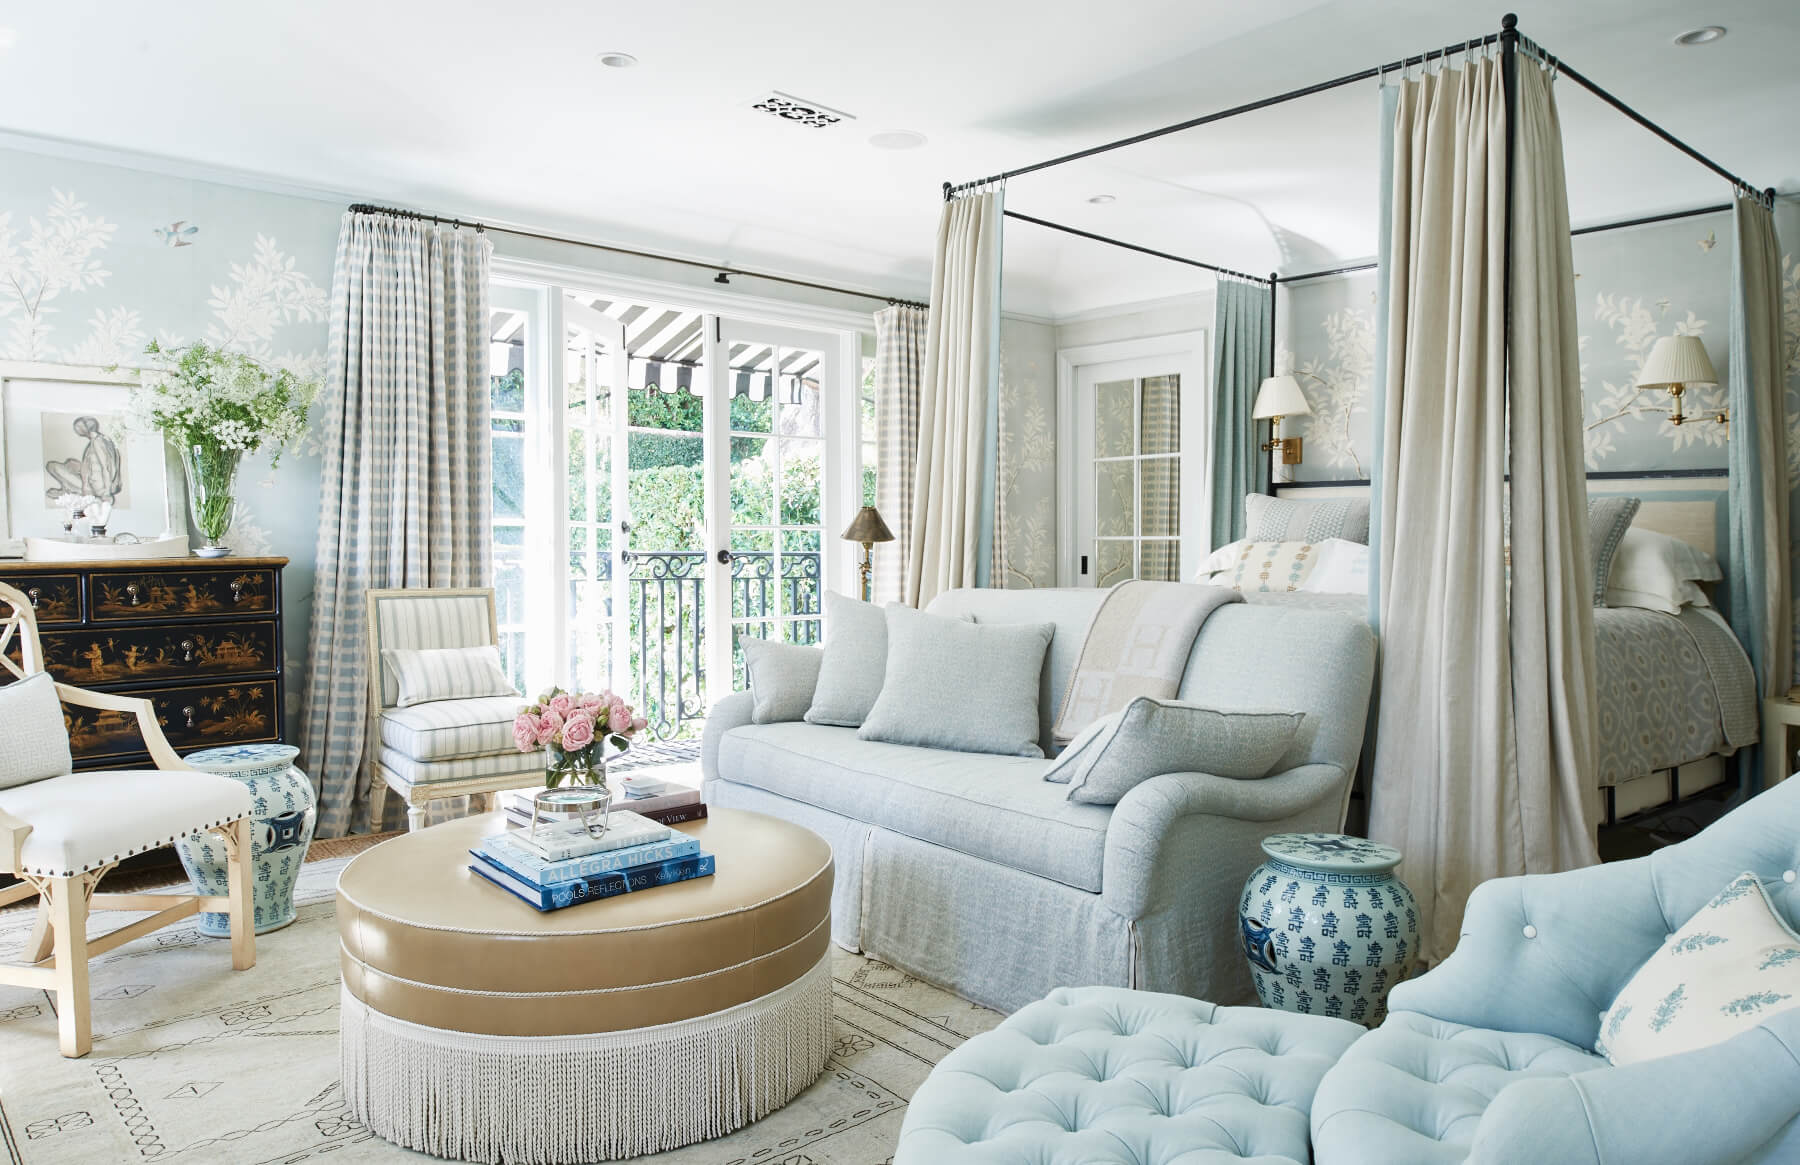 Master bedroom with bed canopy and striped drapes